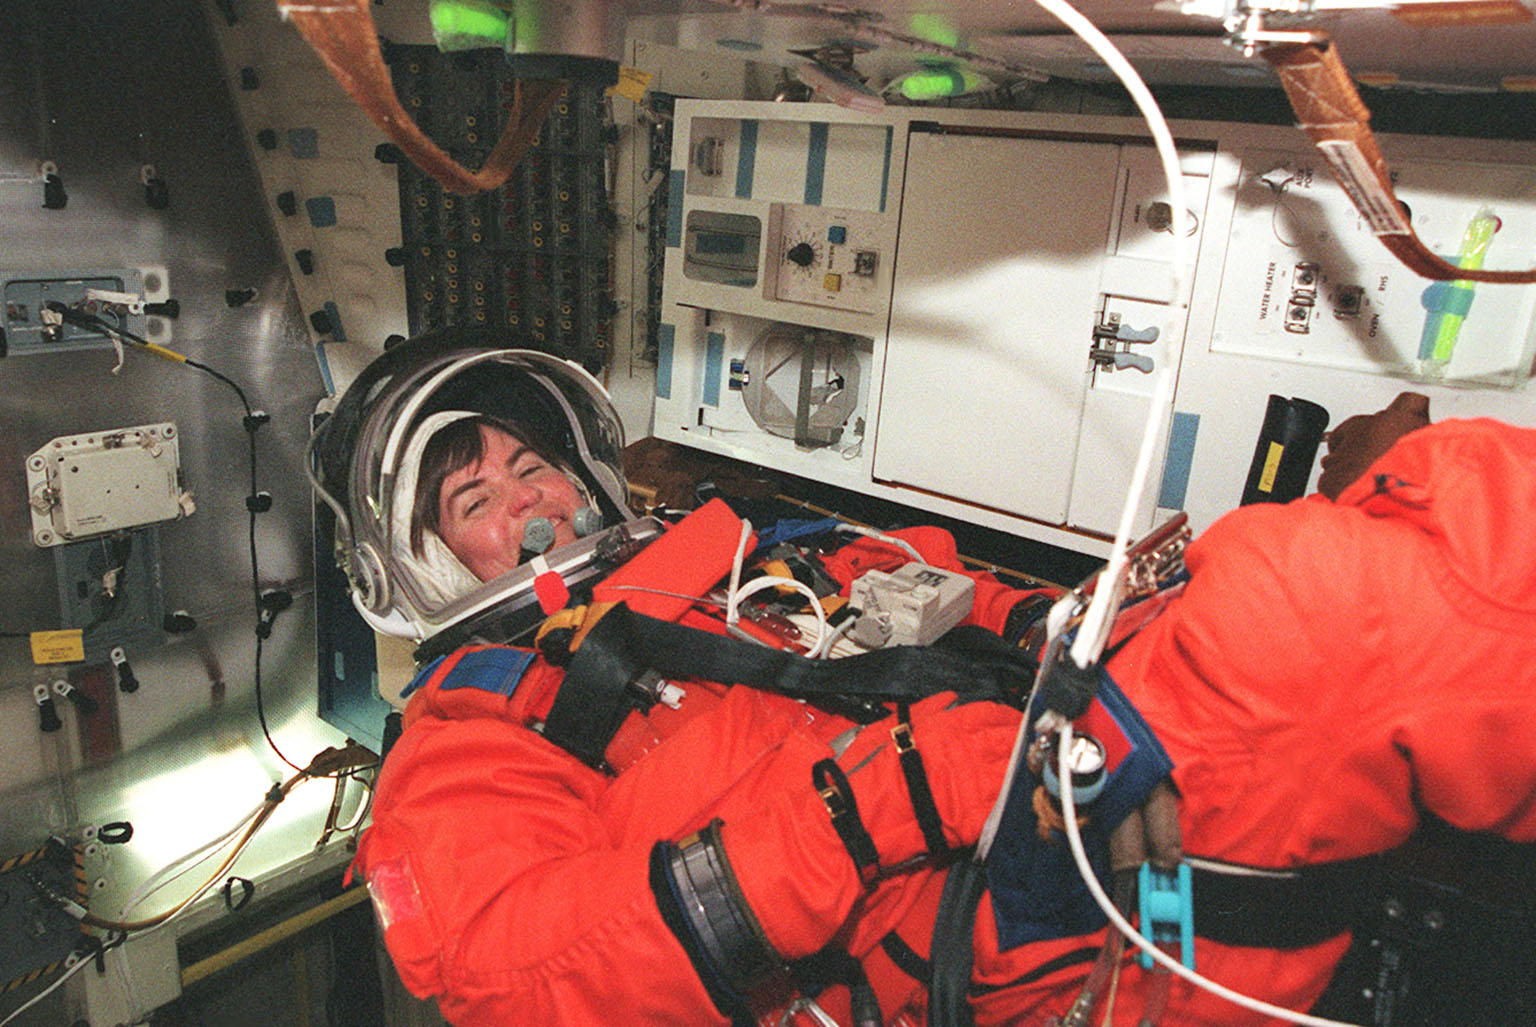 KENNEDY SPACE CENTER, FLA. -- STS-99 Mission Specialist Janice Voss (Ph.D.) settles into her seat inside Space Shuttle Endeavour for a practice launch countdown during Terminal Countdown Demonstration Test (TCDT) activities for the mission. The TCDT includes a simulation of the final launch countdown. STS-99 is the Shuttle Radar Topography Mission, which will chart a new course, using two antennae and a 200-foot-long section of the Space Station-derived mast protruding from the payload bay to produce unrivaled 3-D images of the Earth's surface. The result of the Shuttle Radar Topography Mission could be close to 1 trillion measurements of the Earth's topography. Besides contributing to the production of better maps, these measurements could lead to improved water drainage modeling, more realistic flight simulators, better locations for cell phone towers, and enhanced navigation safety. Launch of Endeavour on the 11-day mission is scheduled for Jan. 31 at 12:47 p.m. EST.